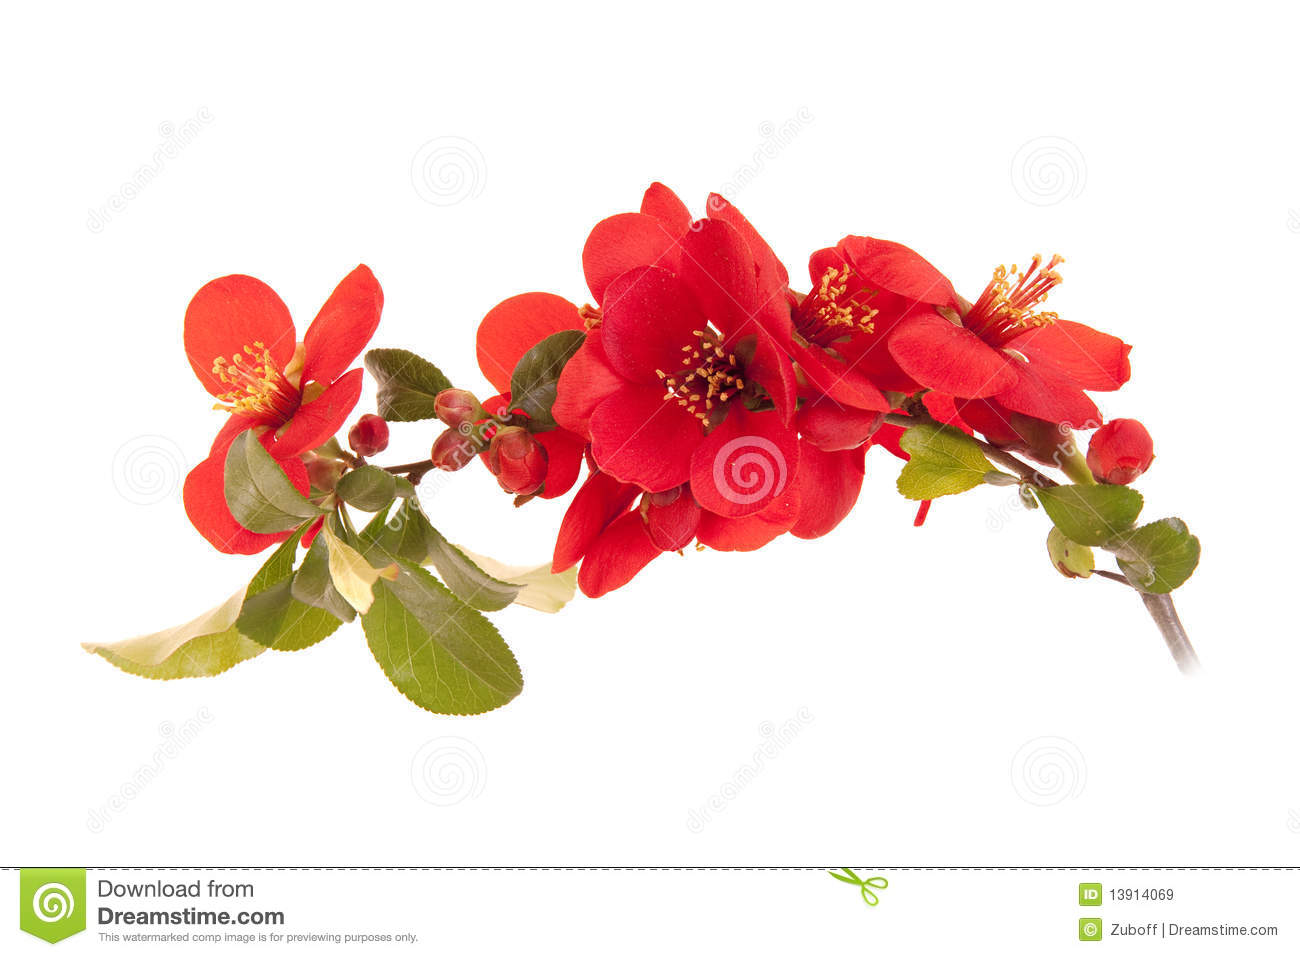 Japanese Quince clipart #20, Download drawings